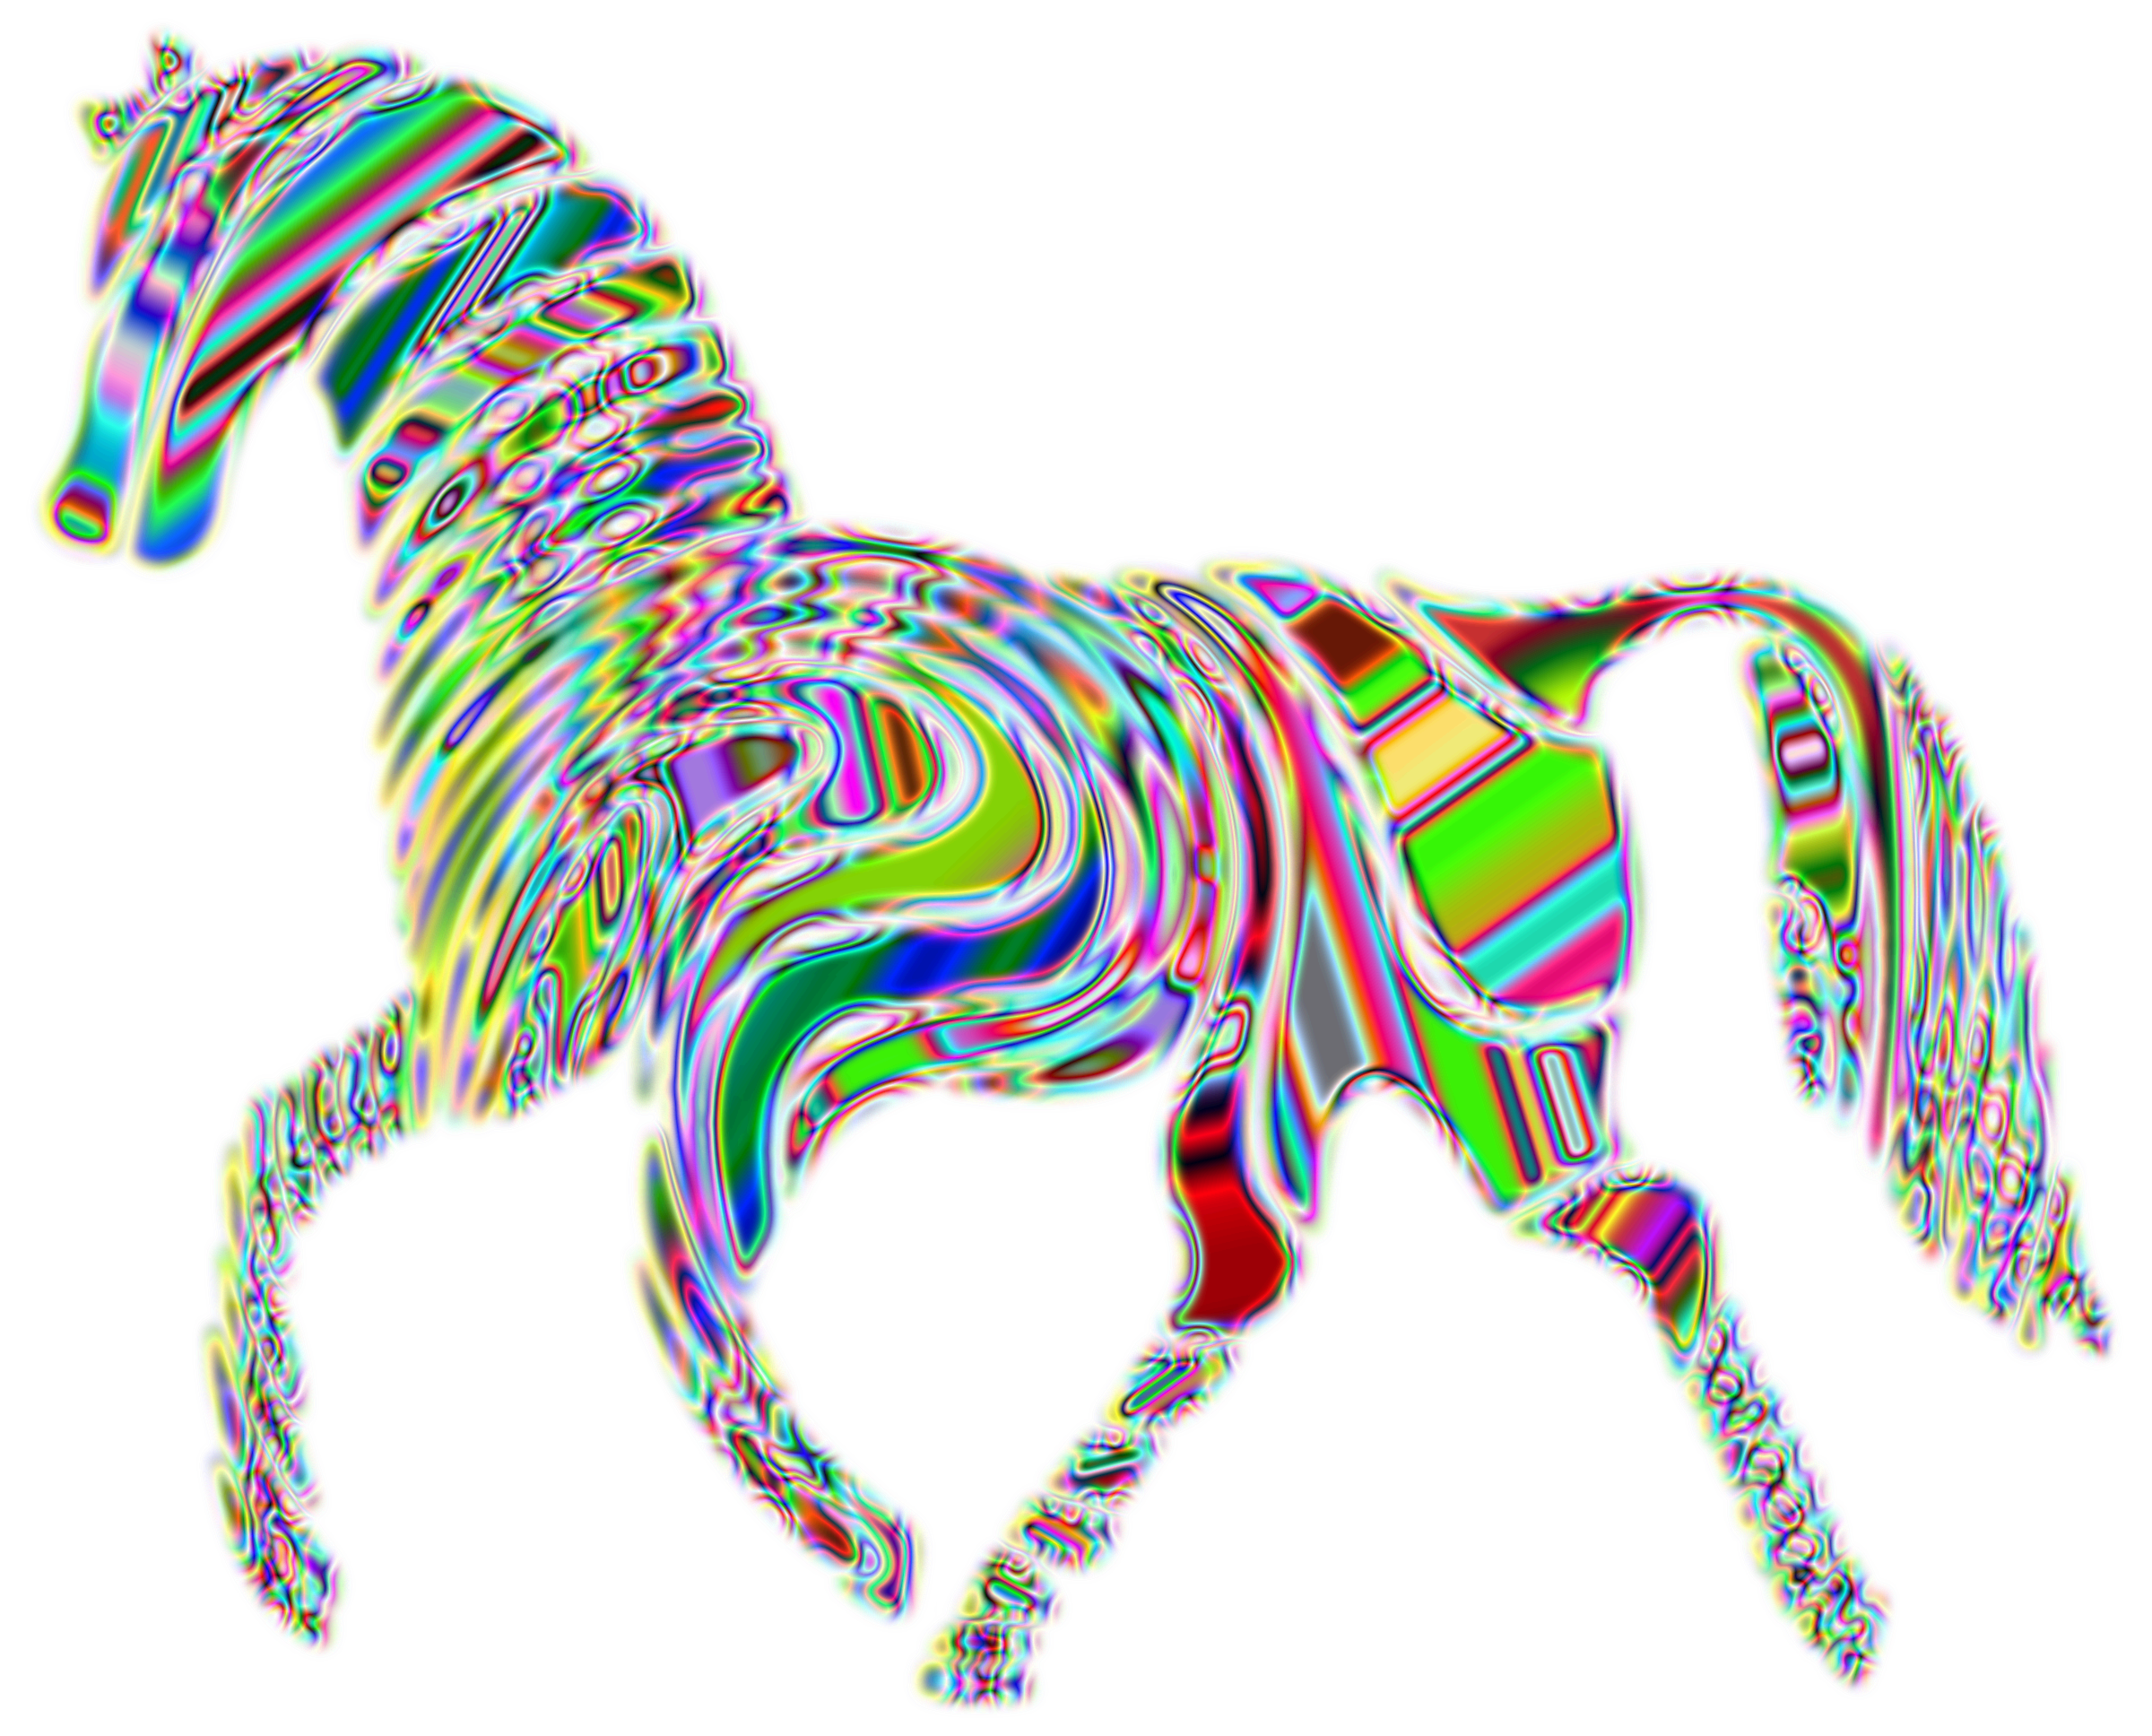 Psychedelic Horse 4 by GDJ